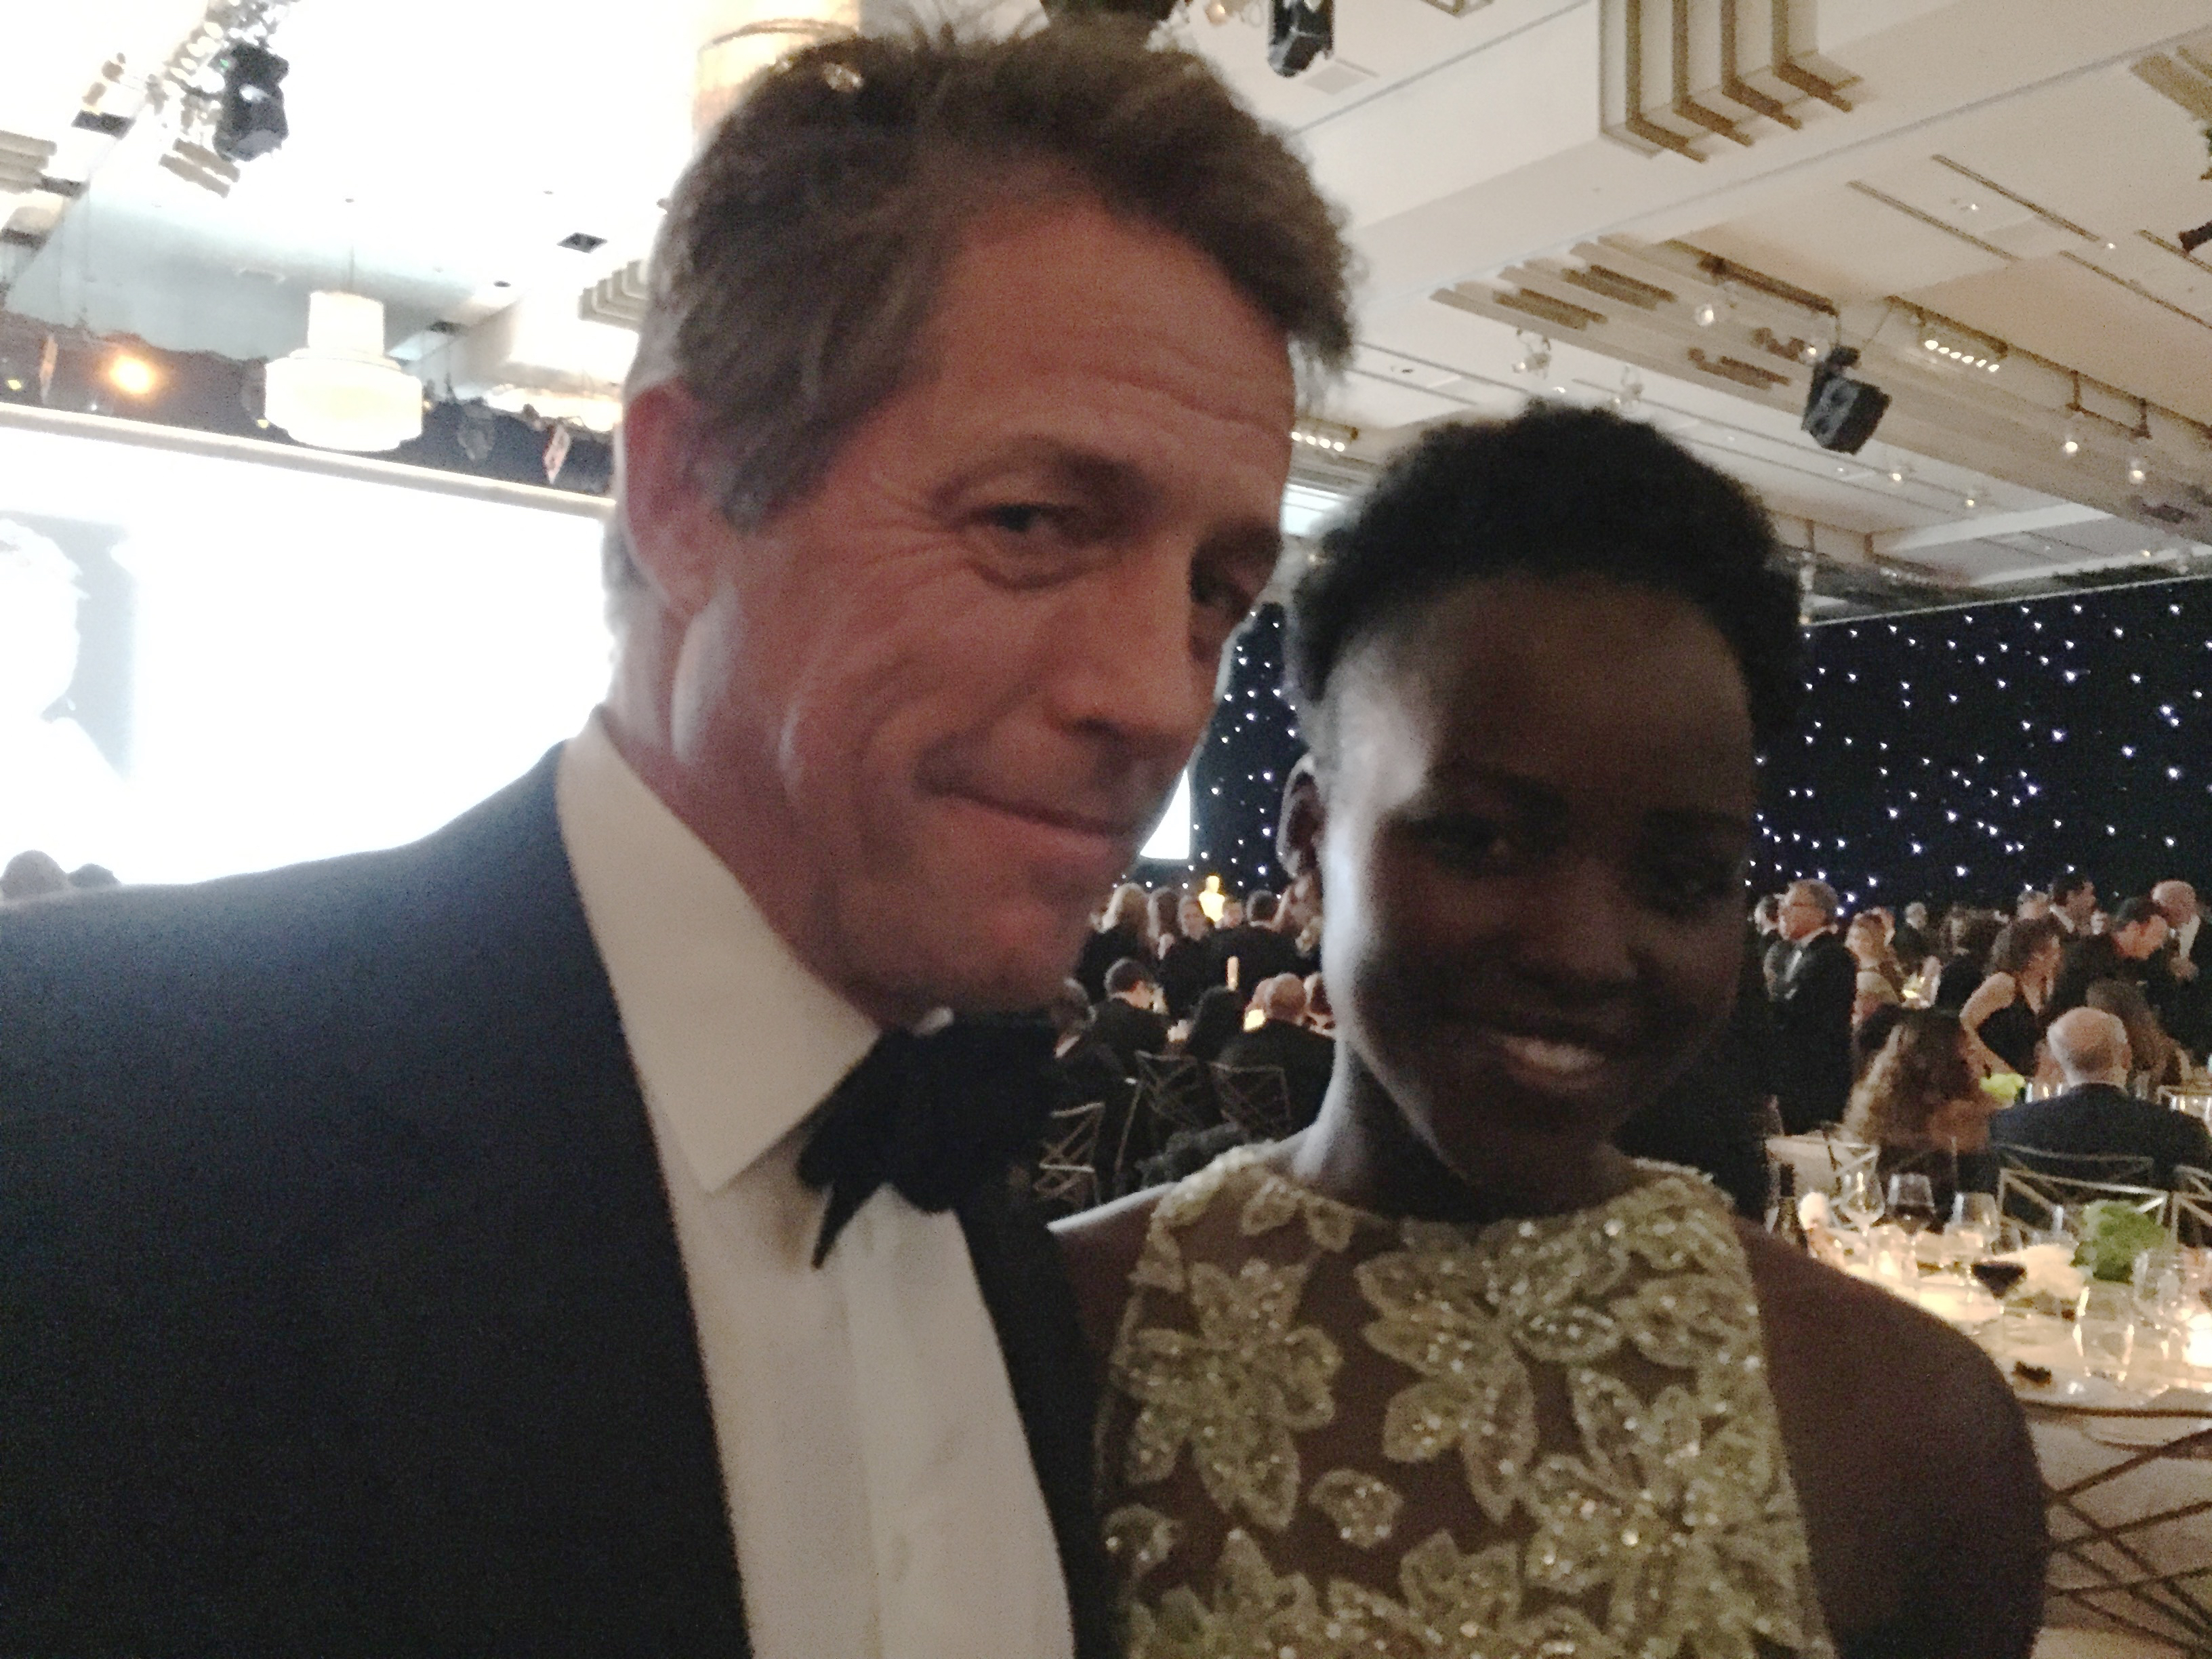 Hugh Grant and Lupita Nyong'o